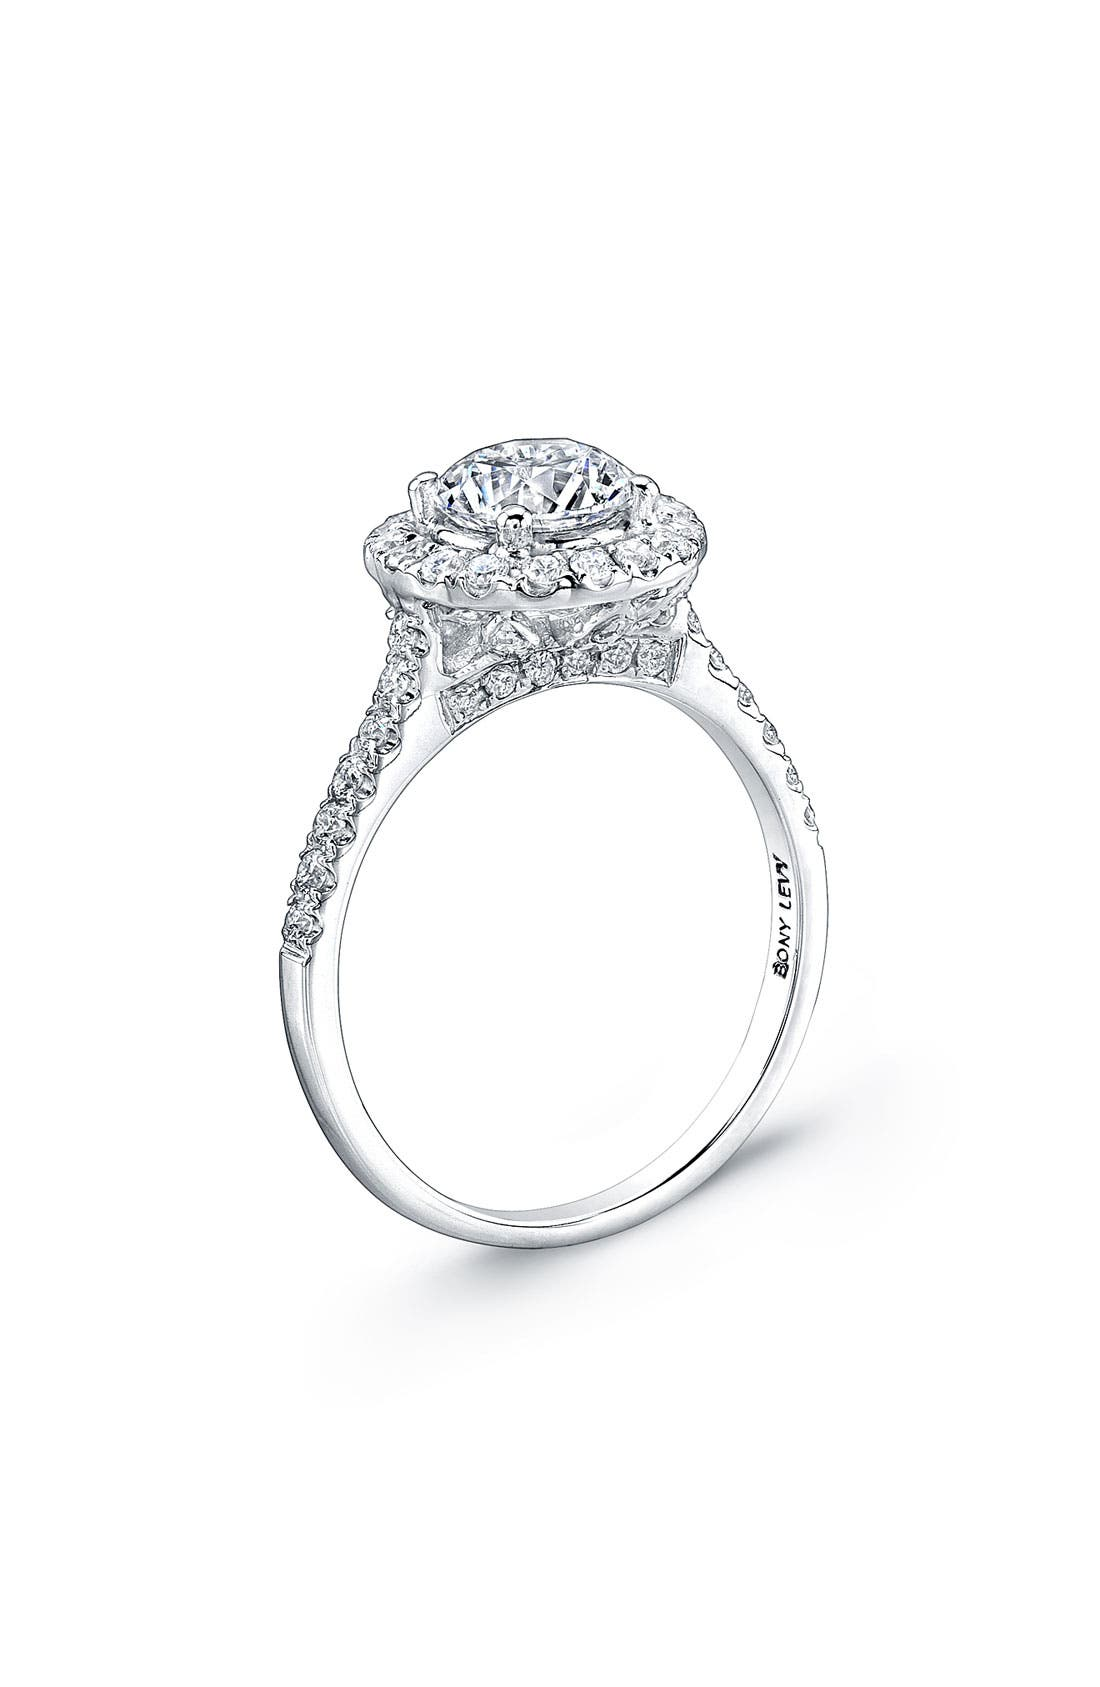 Alternate Image 3  - Bony Levy Pavé Diamond Leaf Engagement Ring Setting (Nordstrom Exclusive)